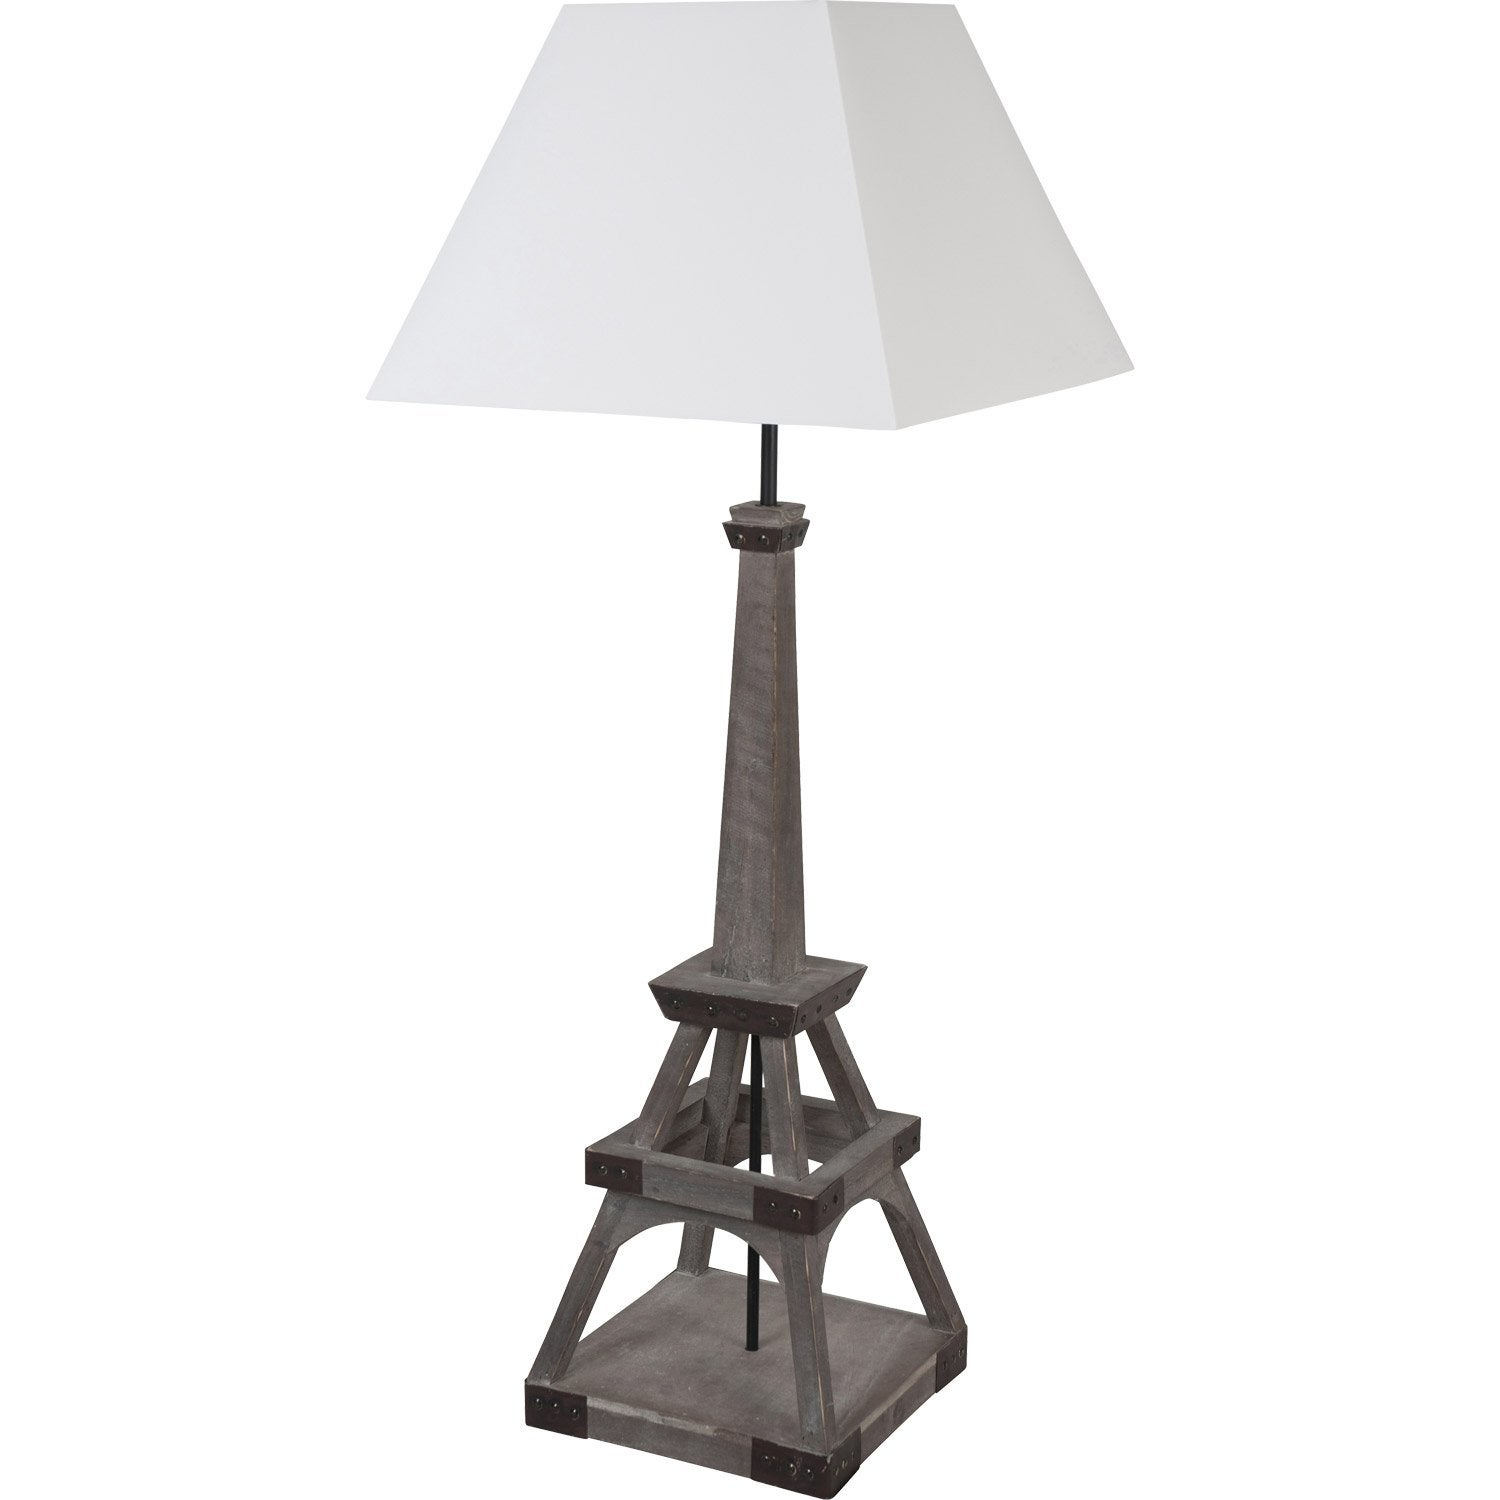 lampe tour eiffel corep coton sur pvc blanc 100 w. Black Bedroom Furniture Sets. Home Design Ideas